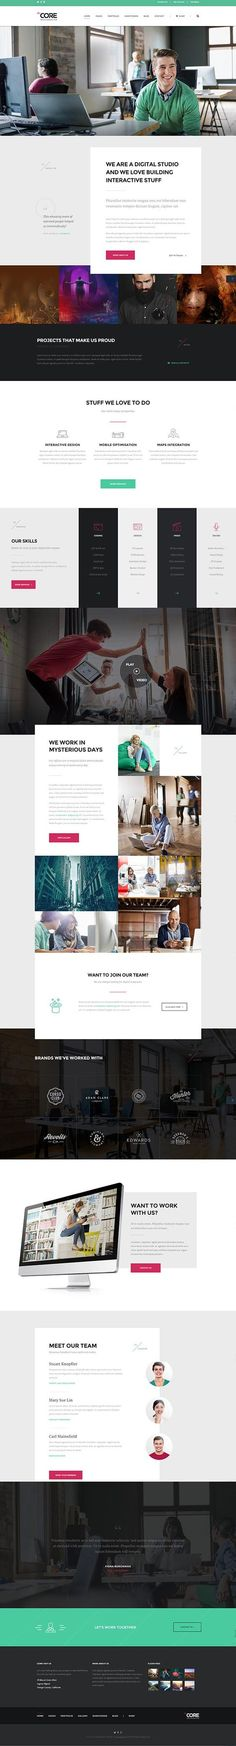 The Cure - Multi-Purpose WordPress Theme by ThemeFuse